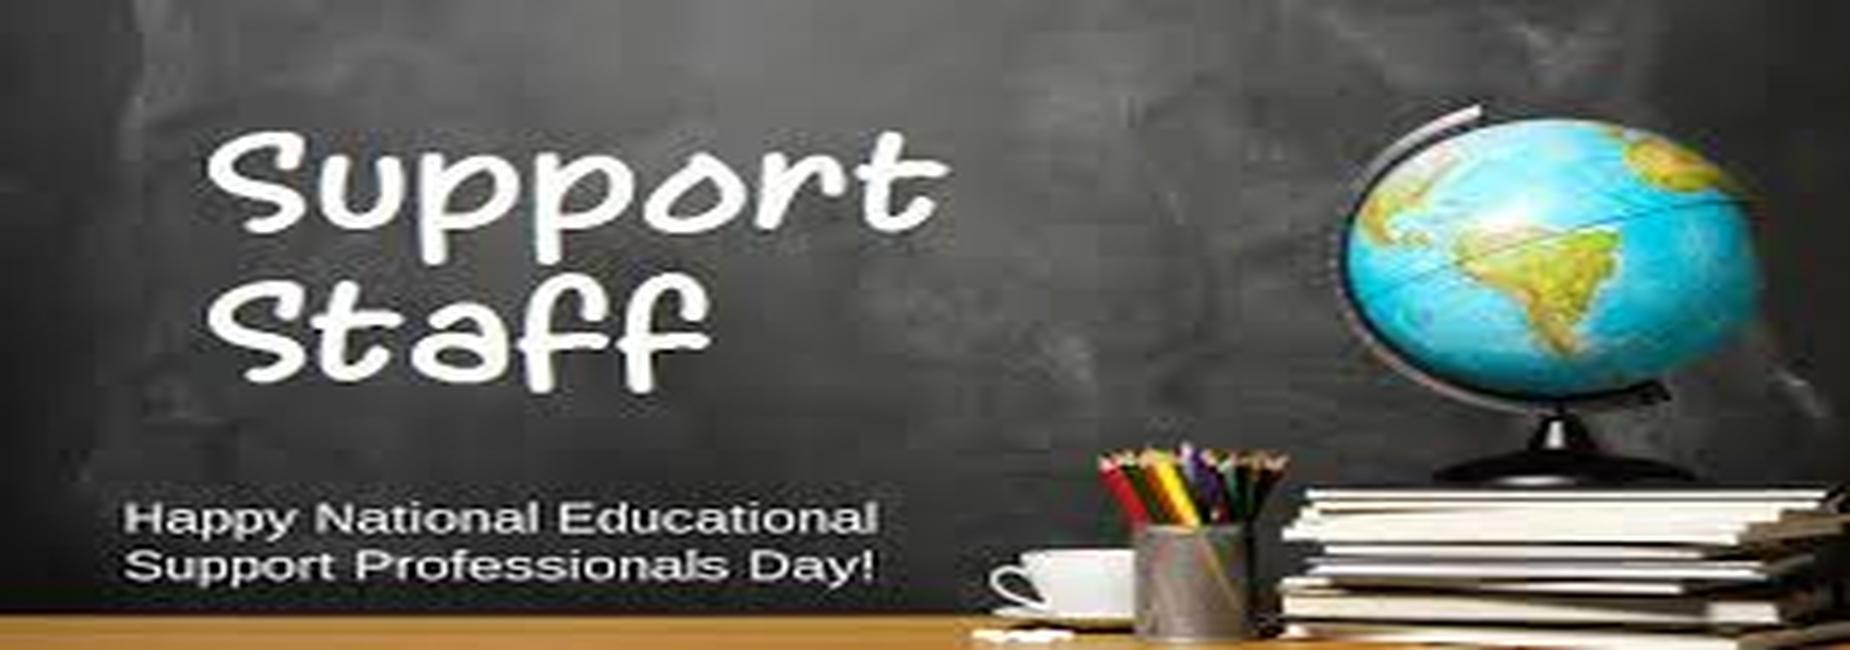 a graphic promoting National Education Support Day